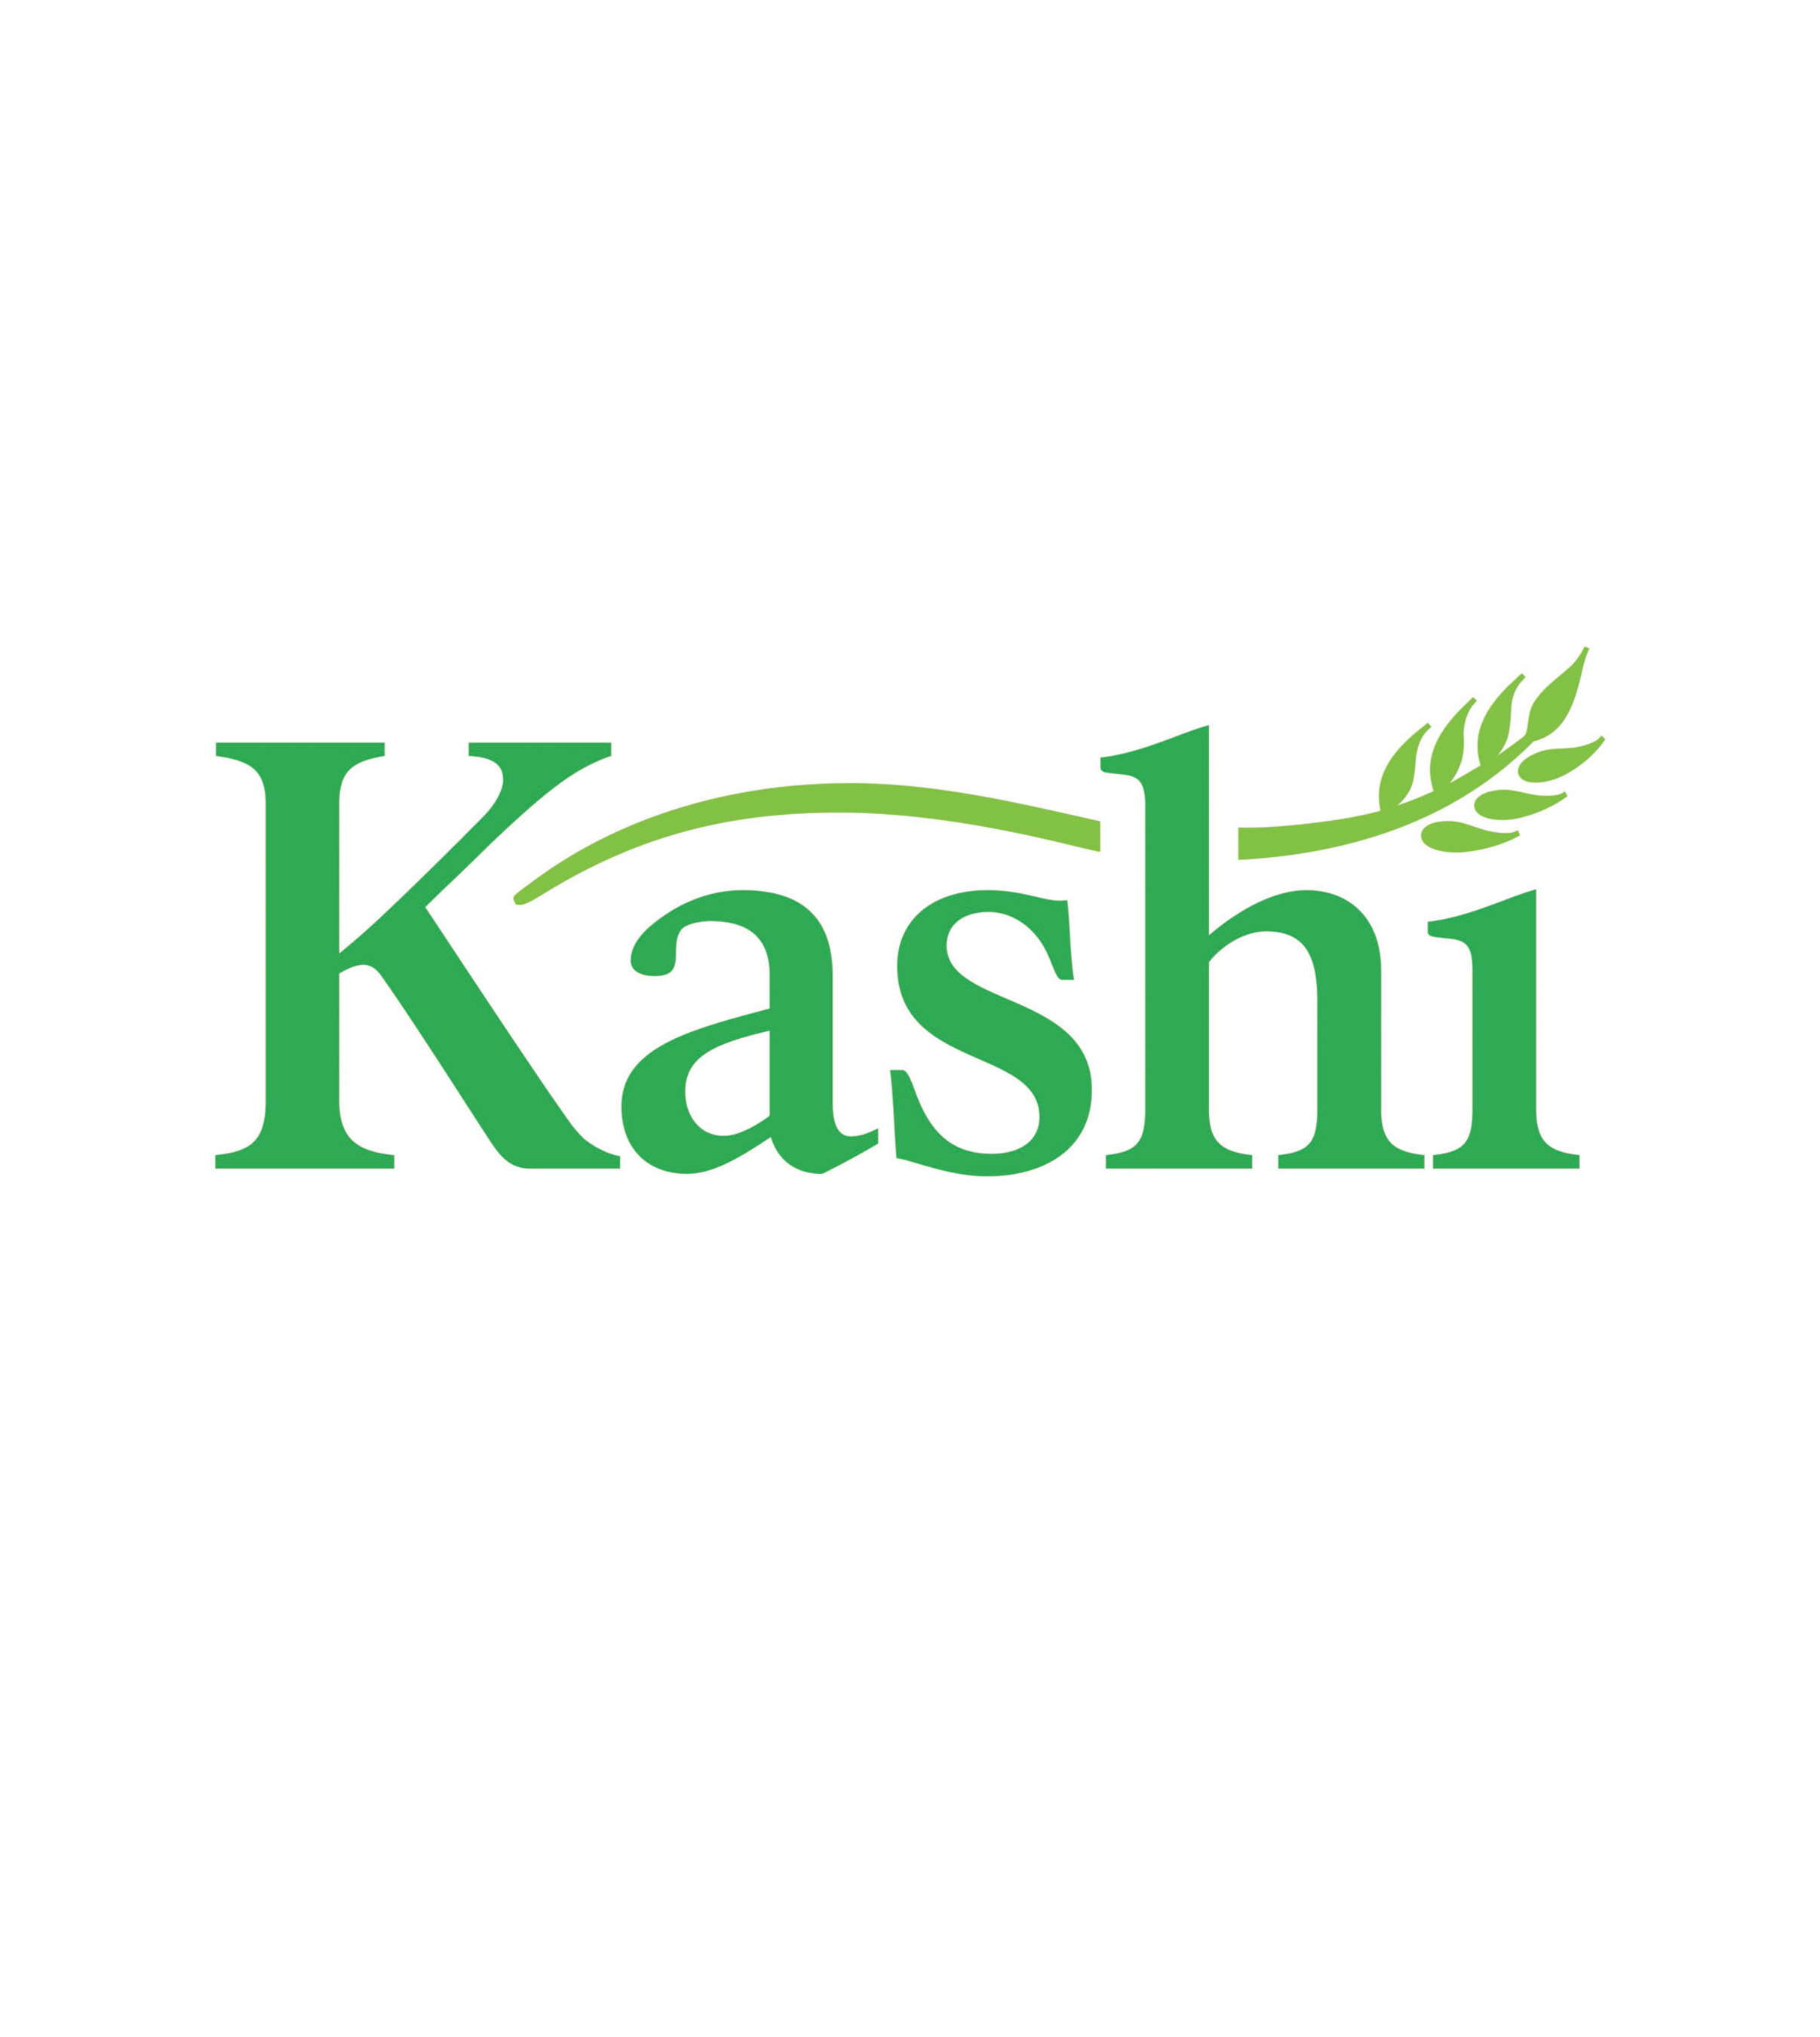 Kashi Unlocks The Power Of Plants To Fuel Lives In Motion